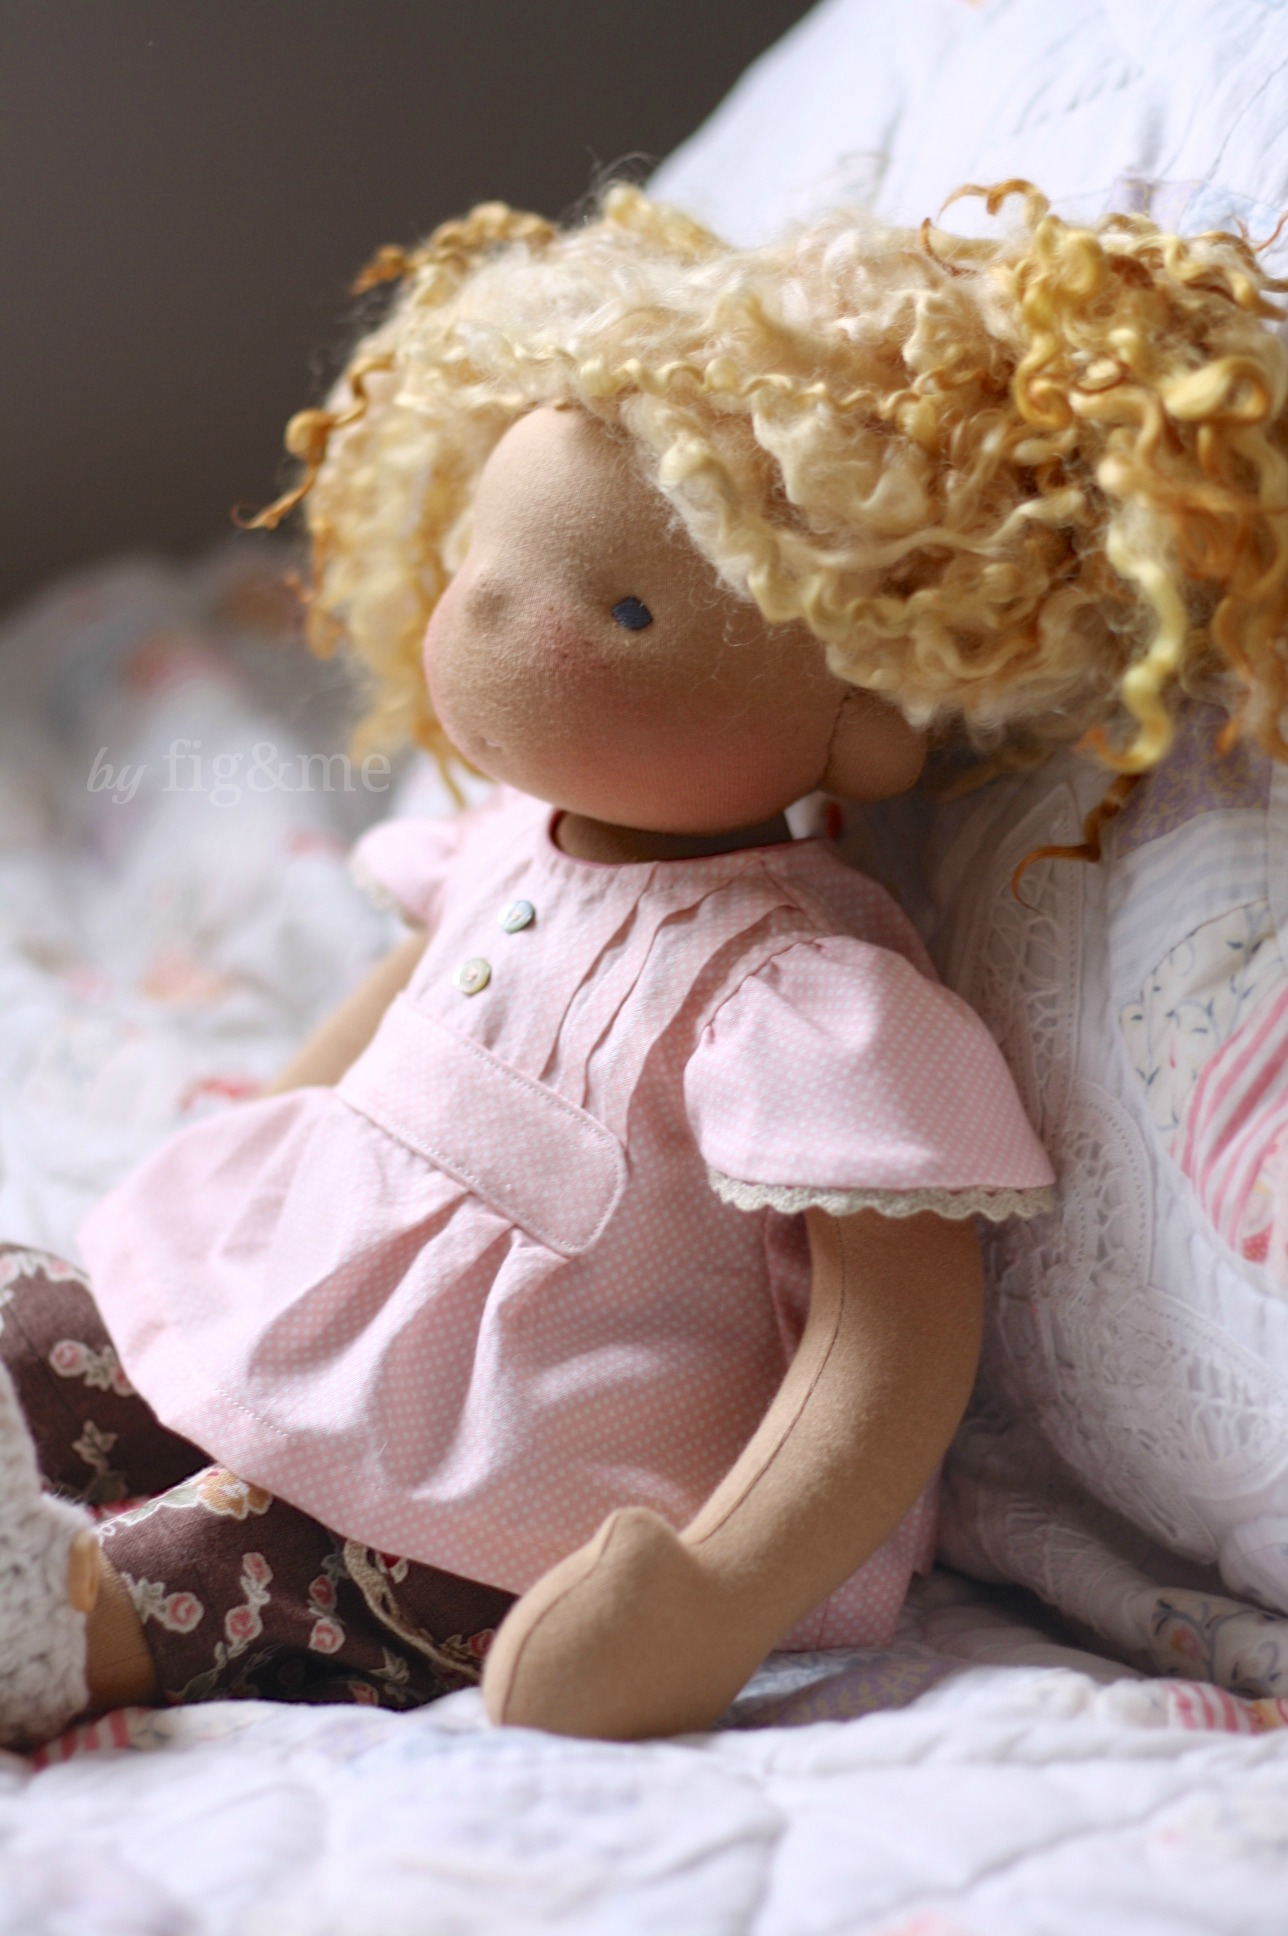 Little Beau in her play clothes, by Fig and me.